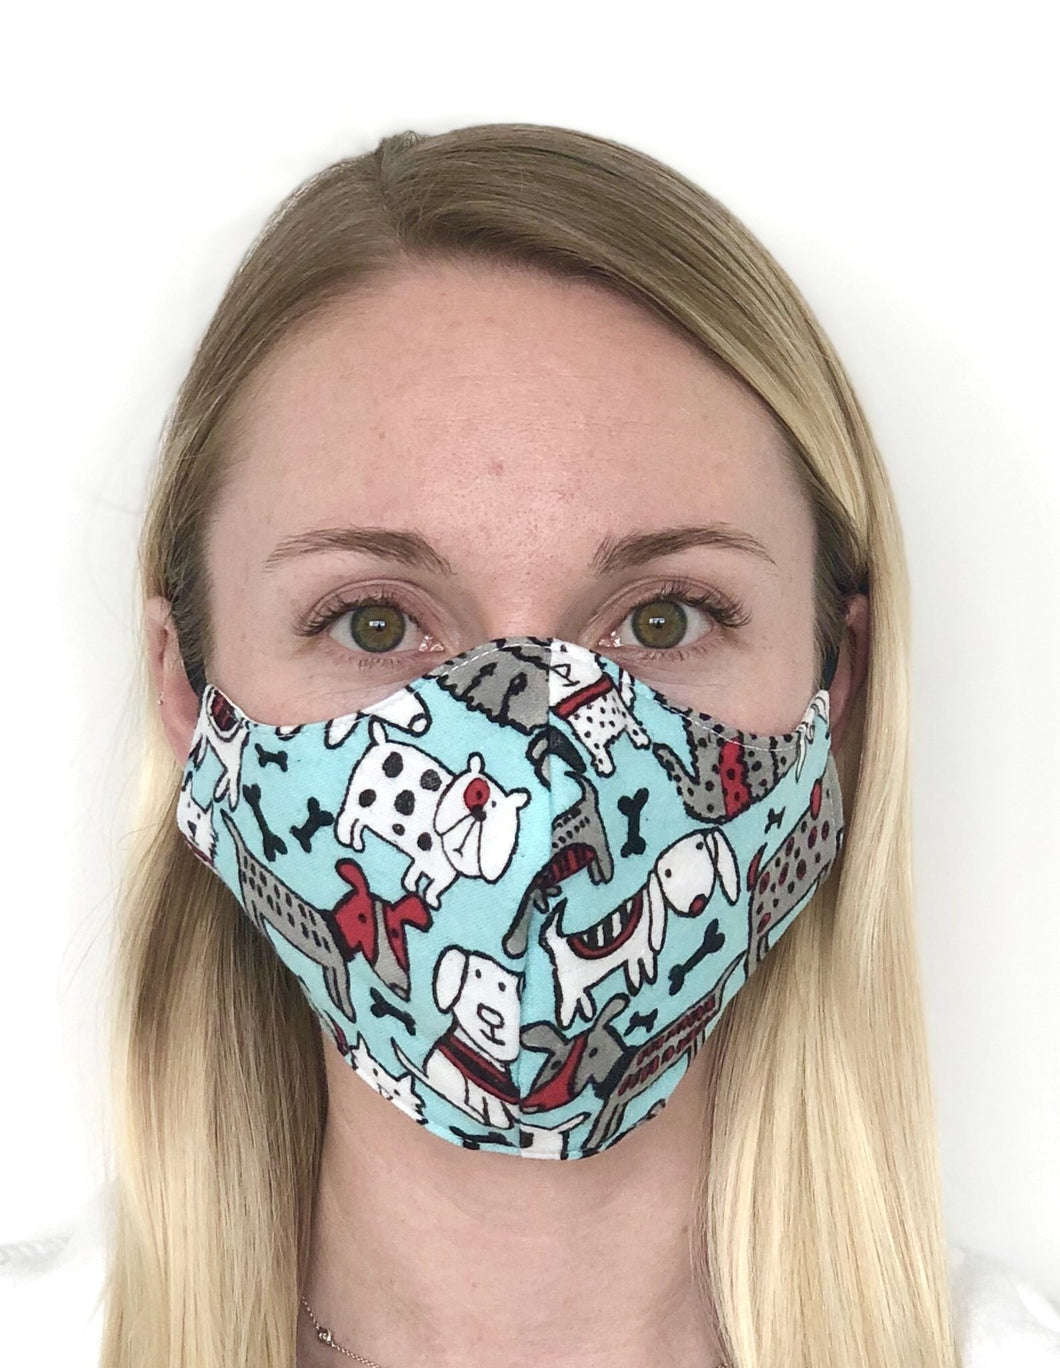 Puppy Dog Face Mask - LIMITED EDITION!